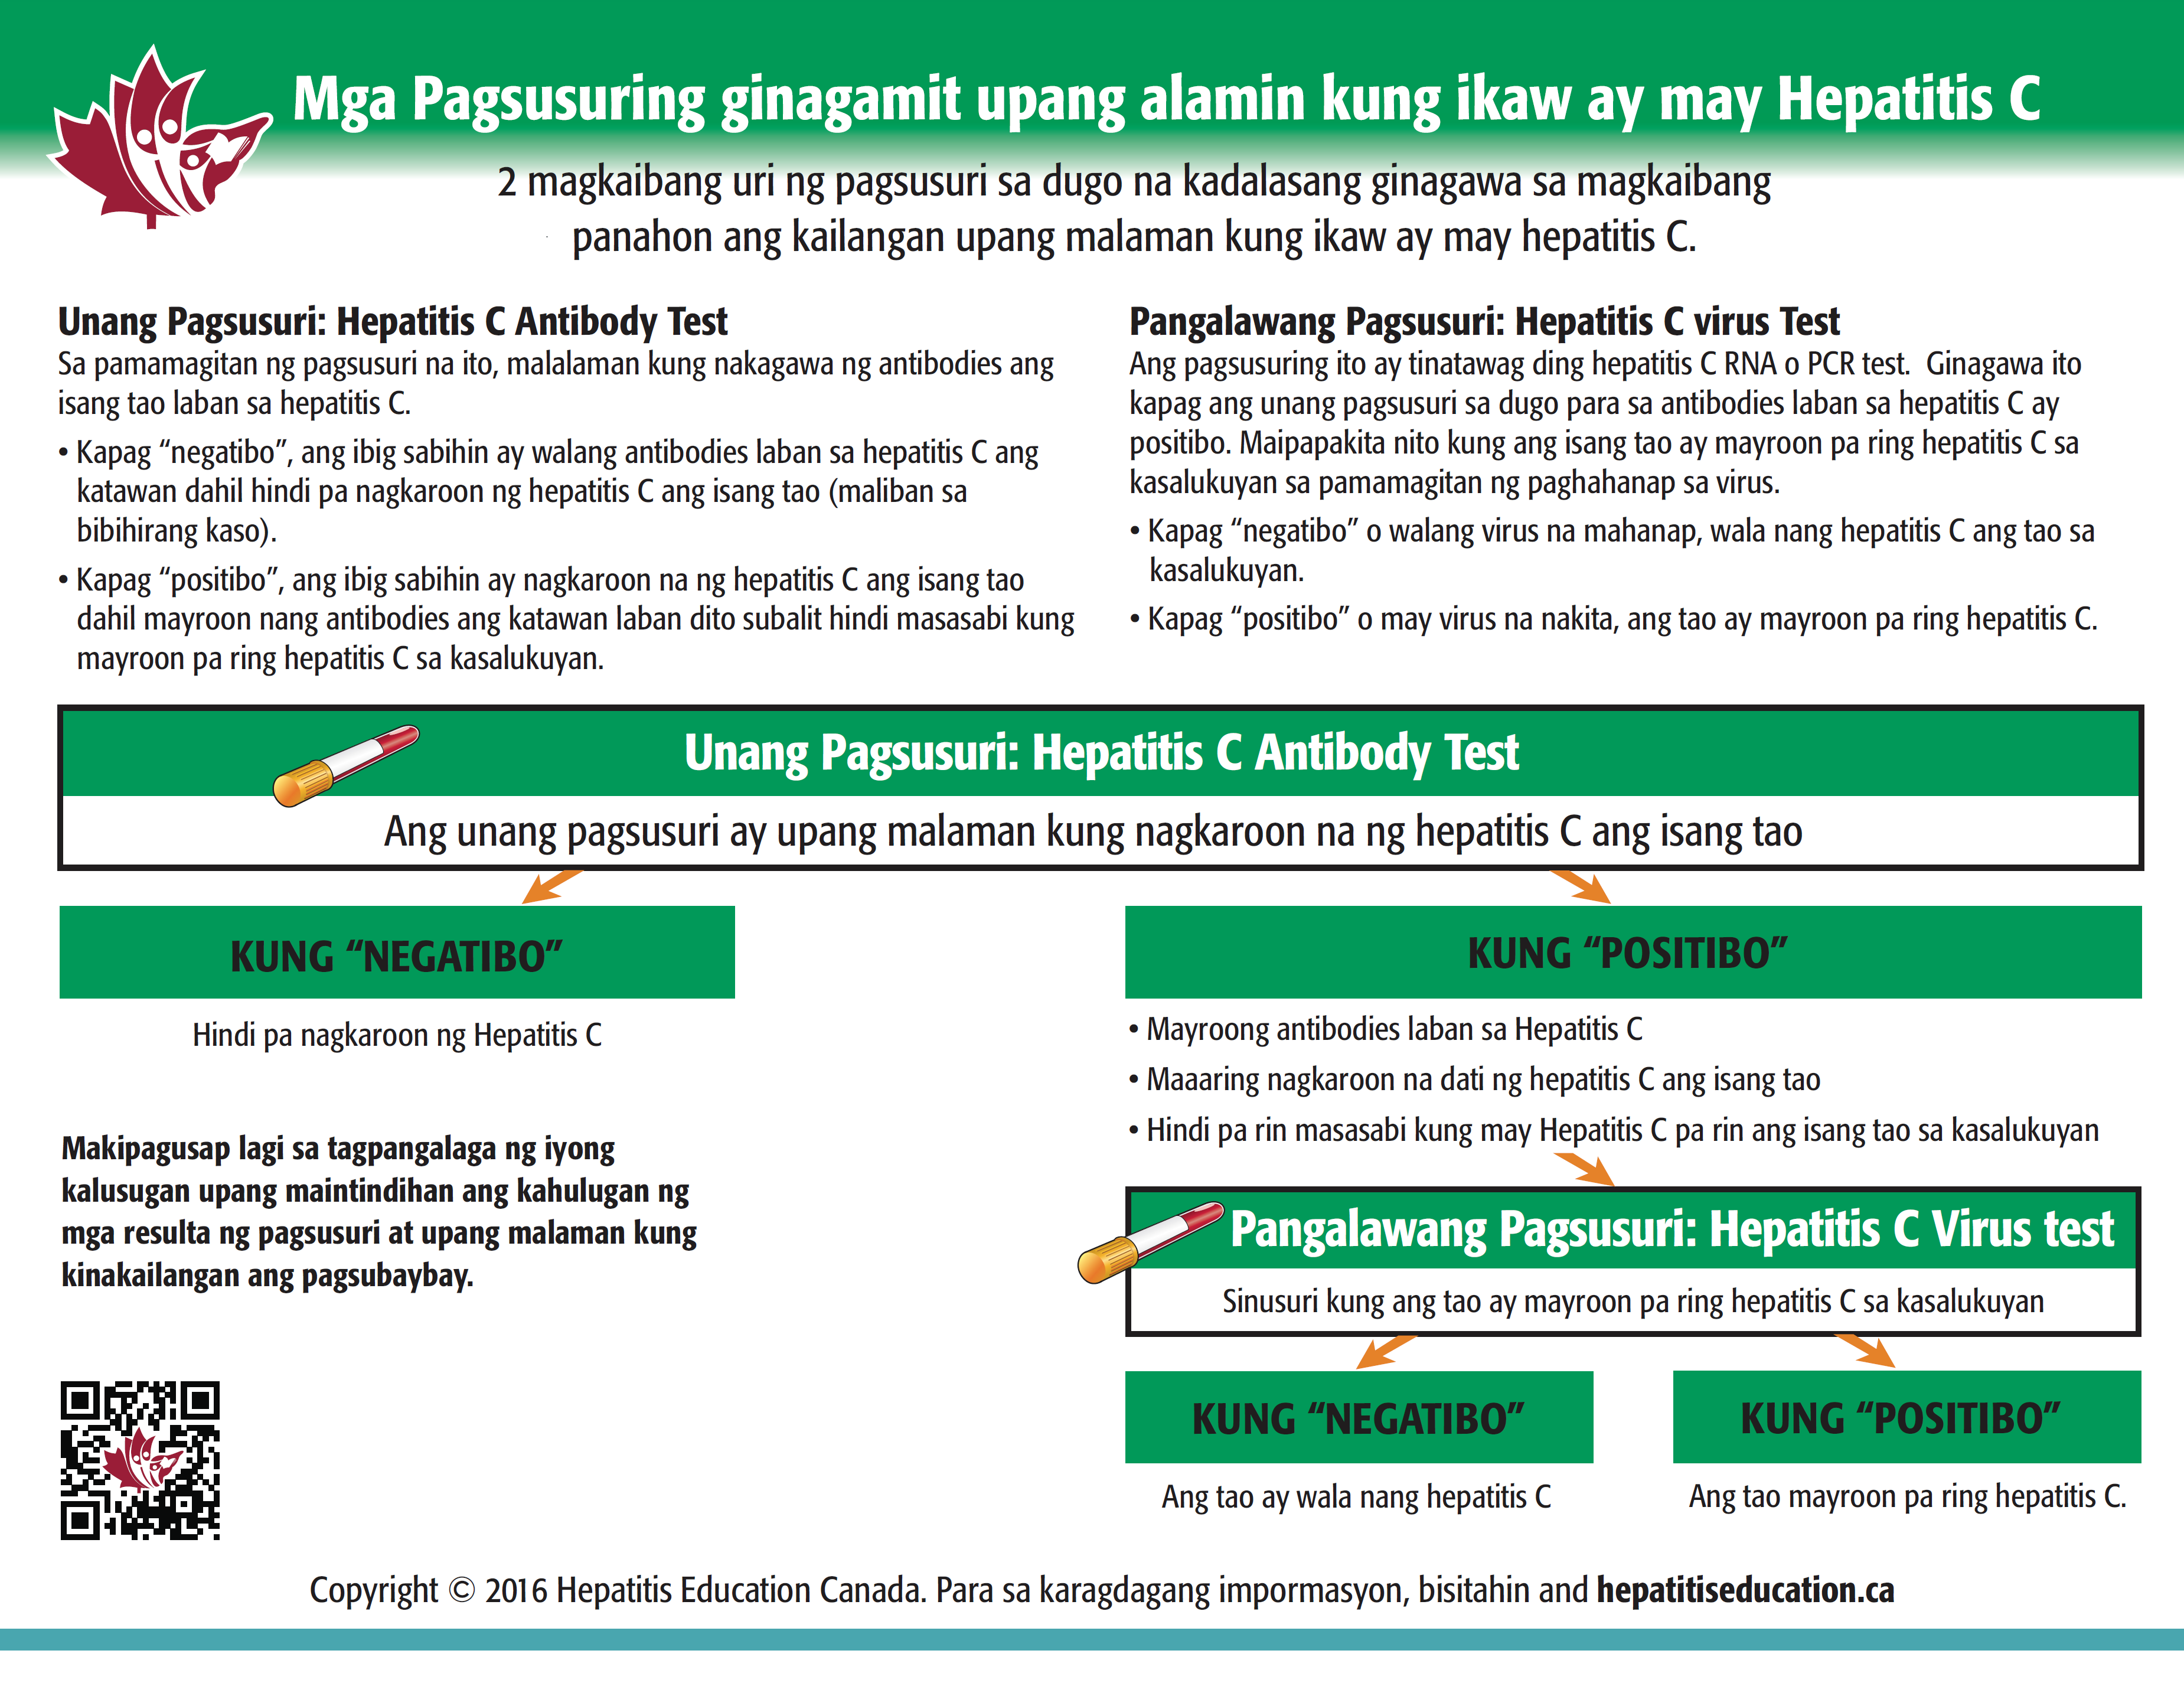 Patient-test-guide-Tagalog-016-4 July 4, 2016